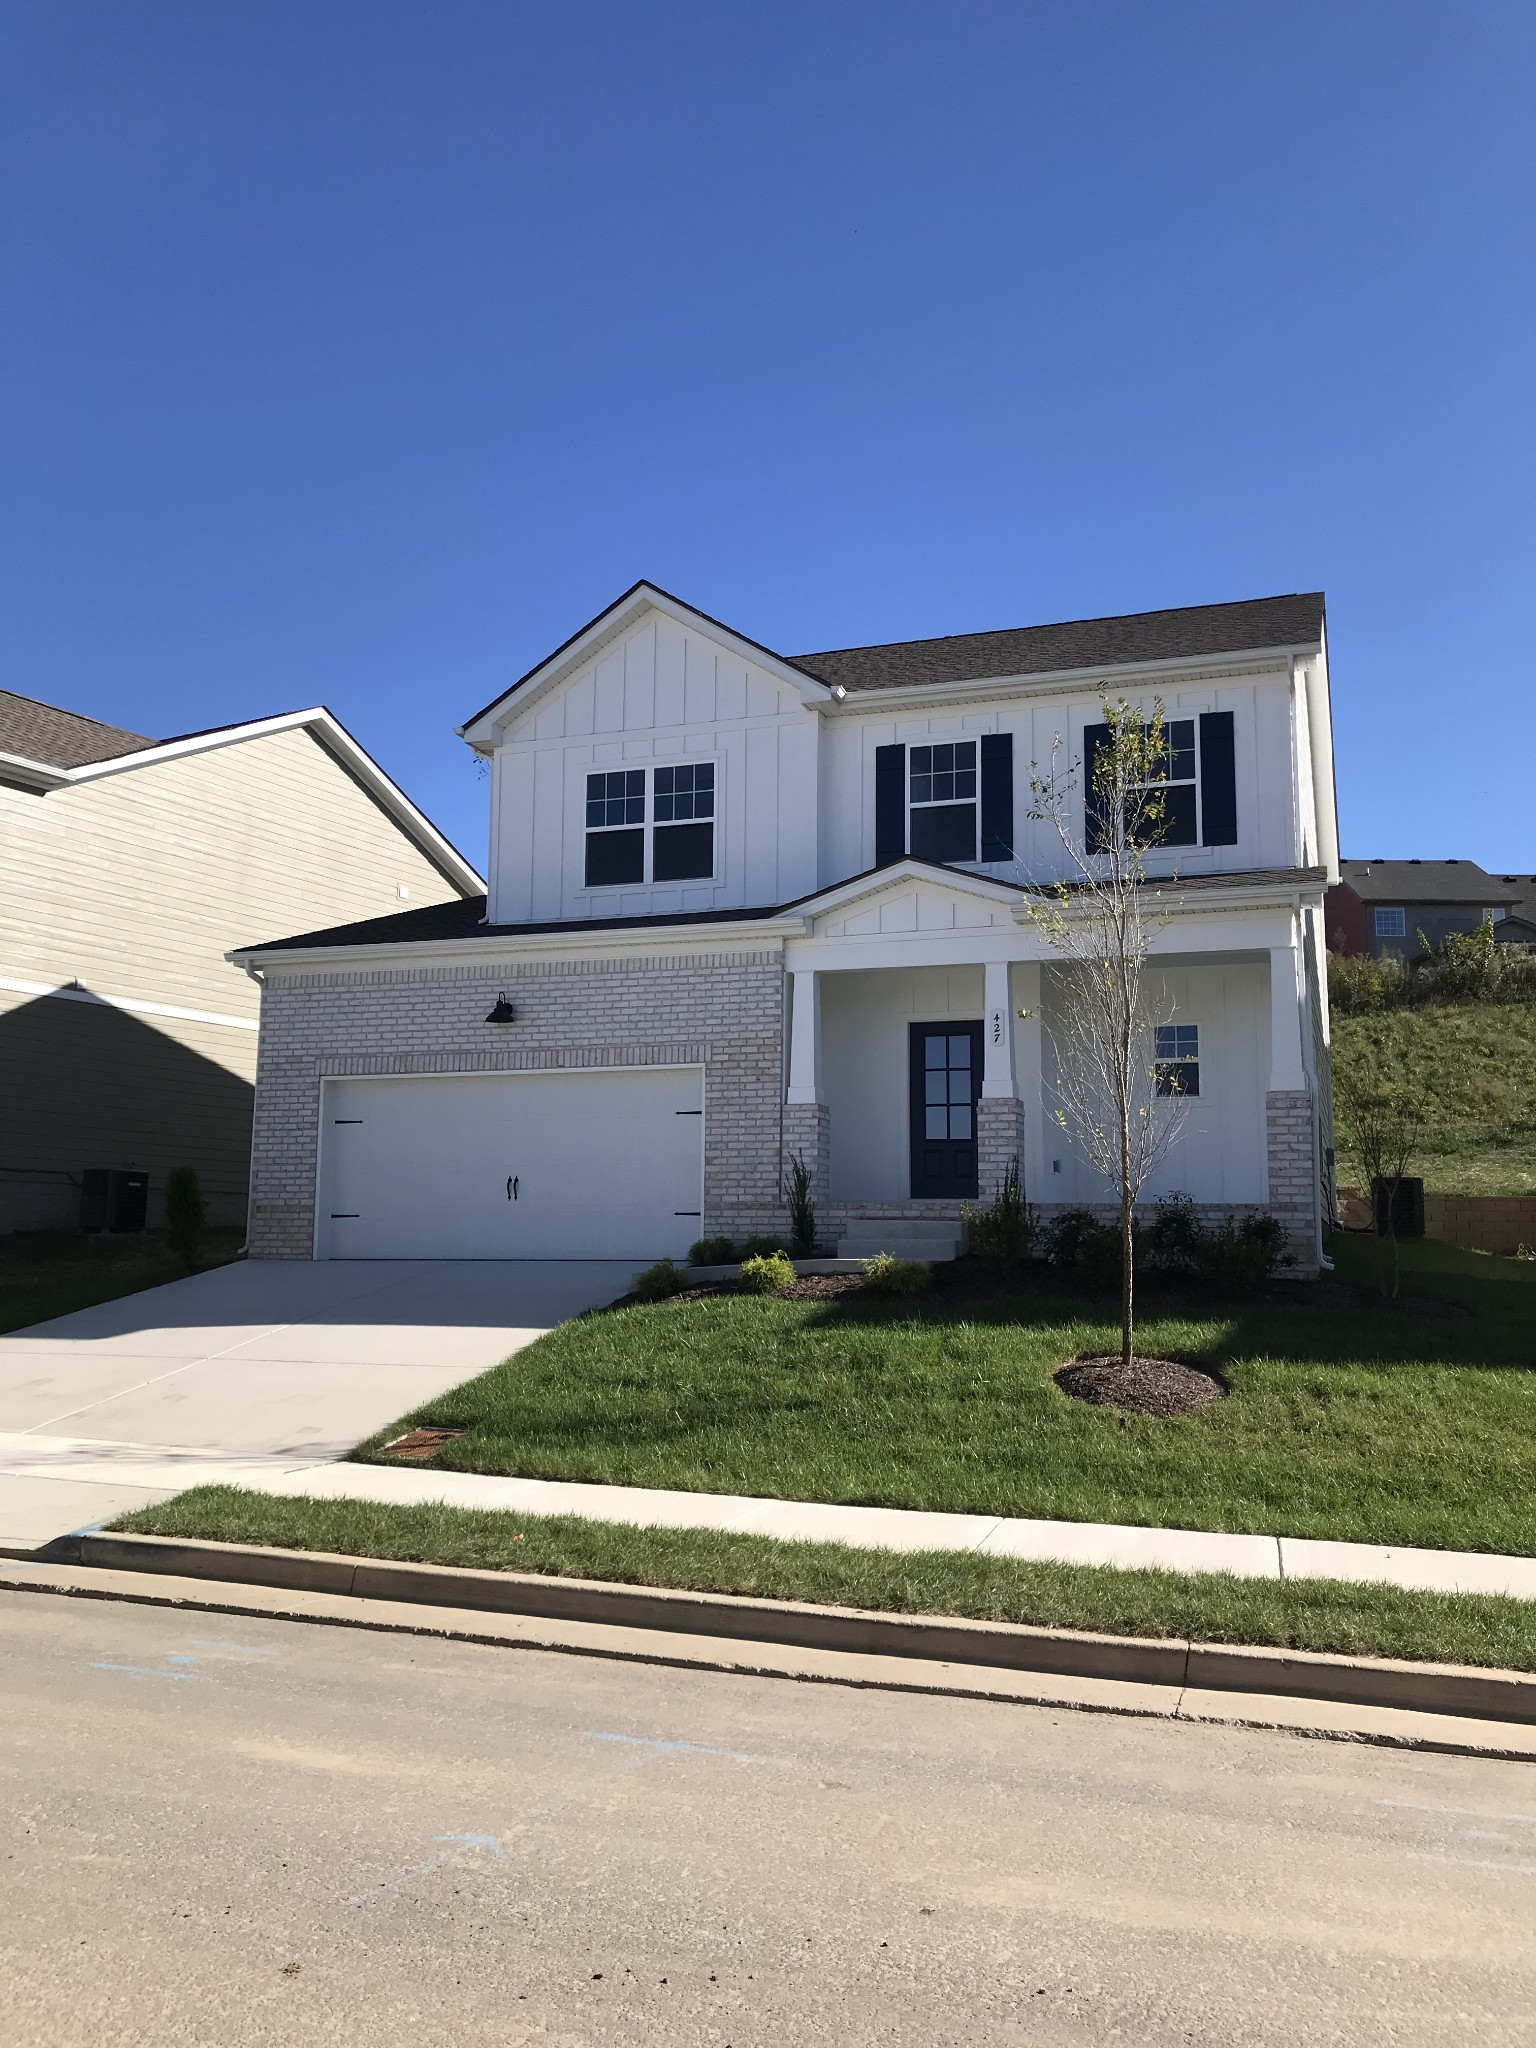 Ready in April! 3 bdrm-2.5 bath 1977SF. All bdrms up with bonus and laundry and 2 full baths up.gas fireplace! Open floor plan with huge great rm-10x10 patio in back and cov front porch. 2 car garage-fireplace(gas insert) Only a few homes left before we are sold out!